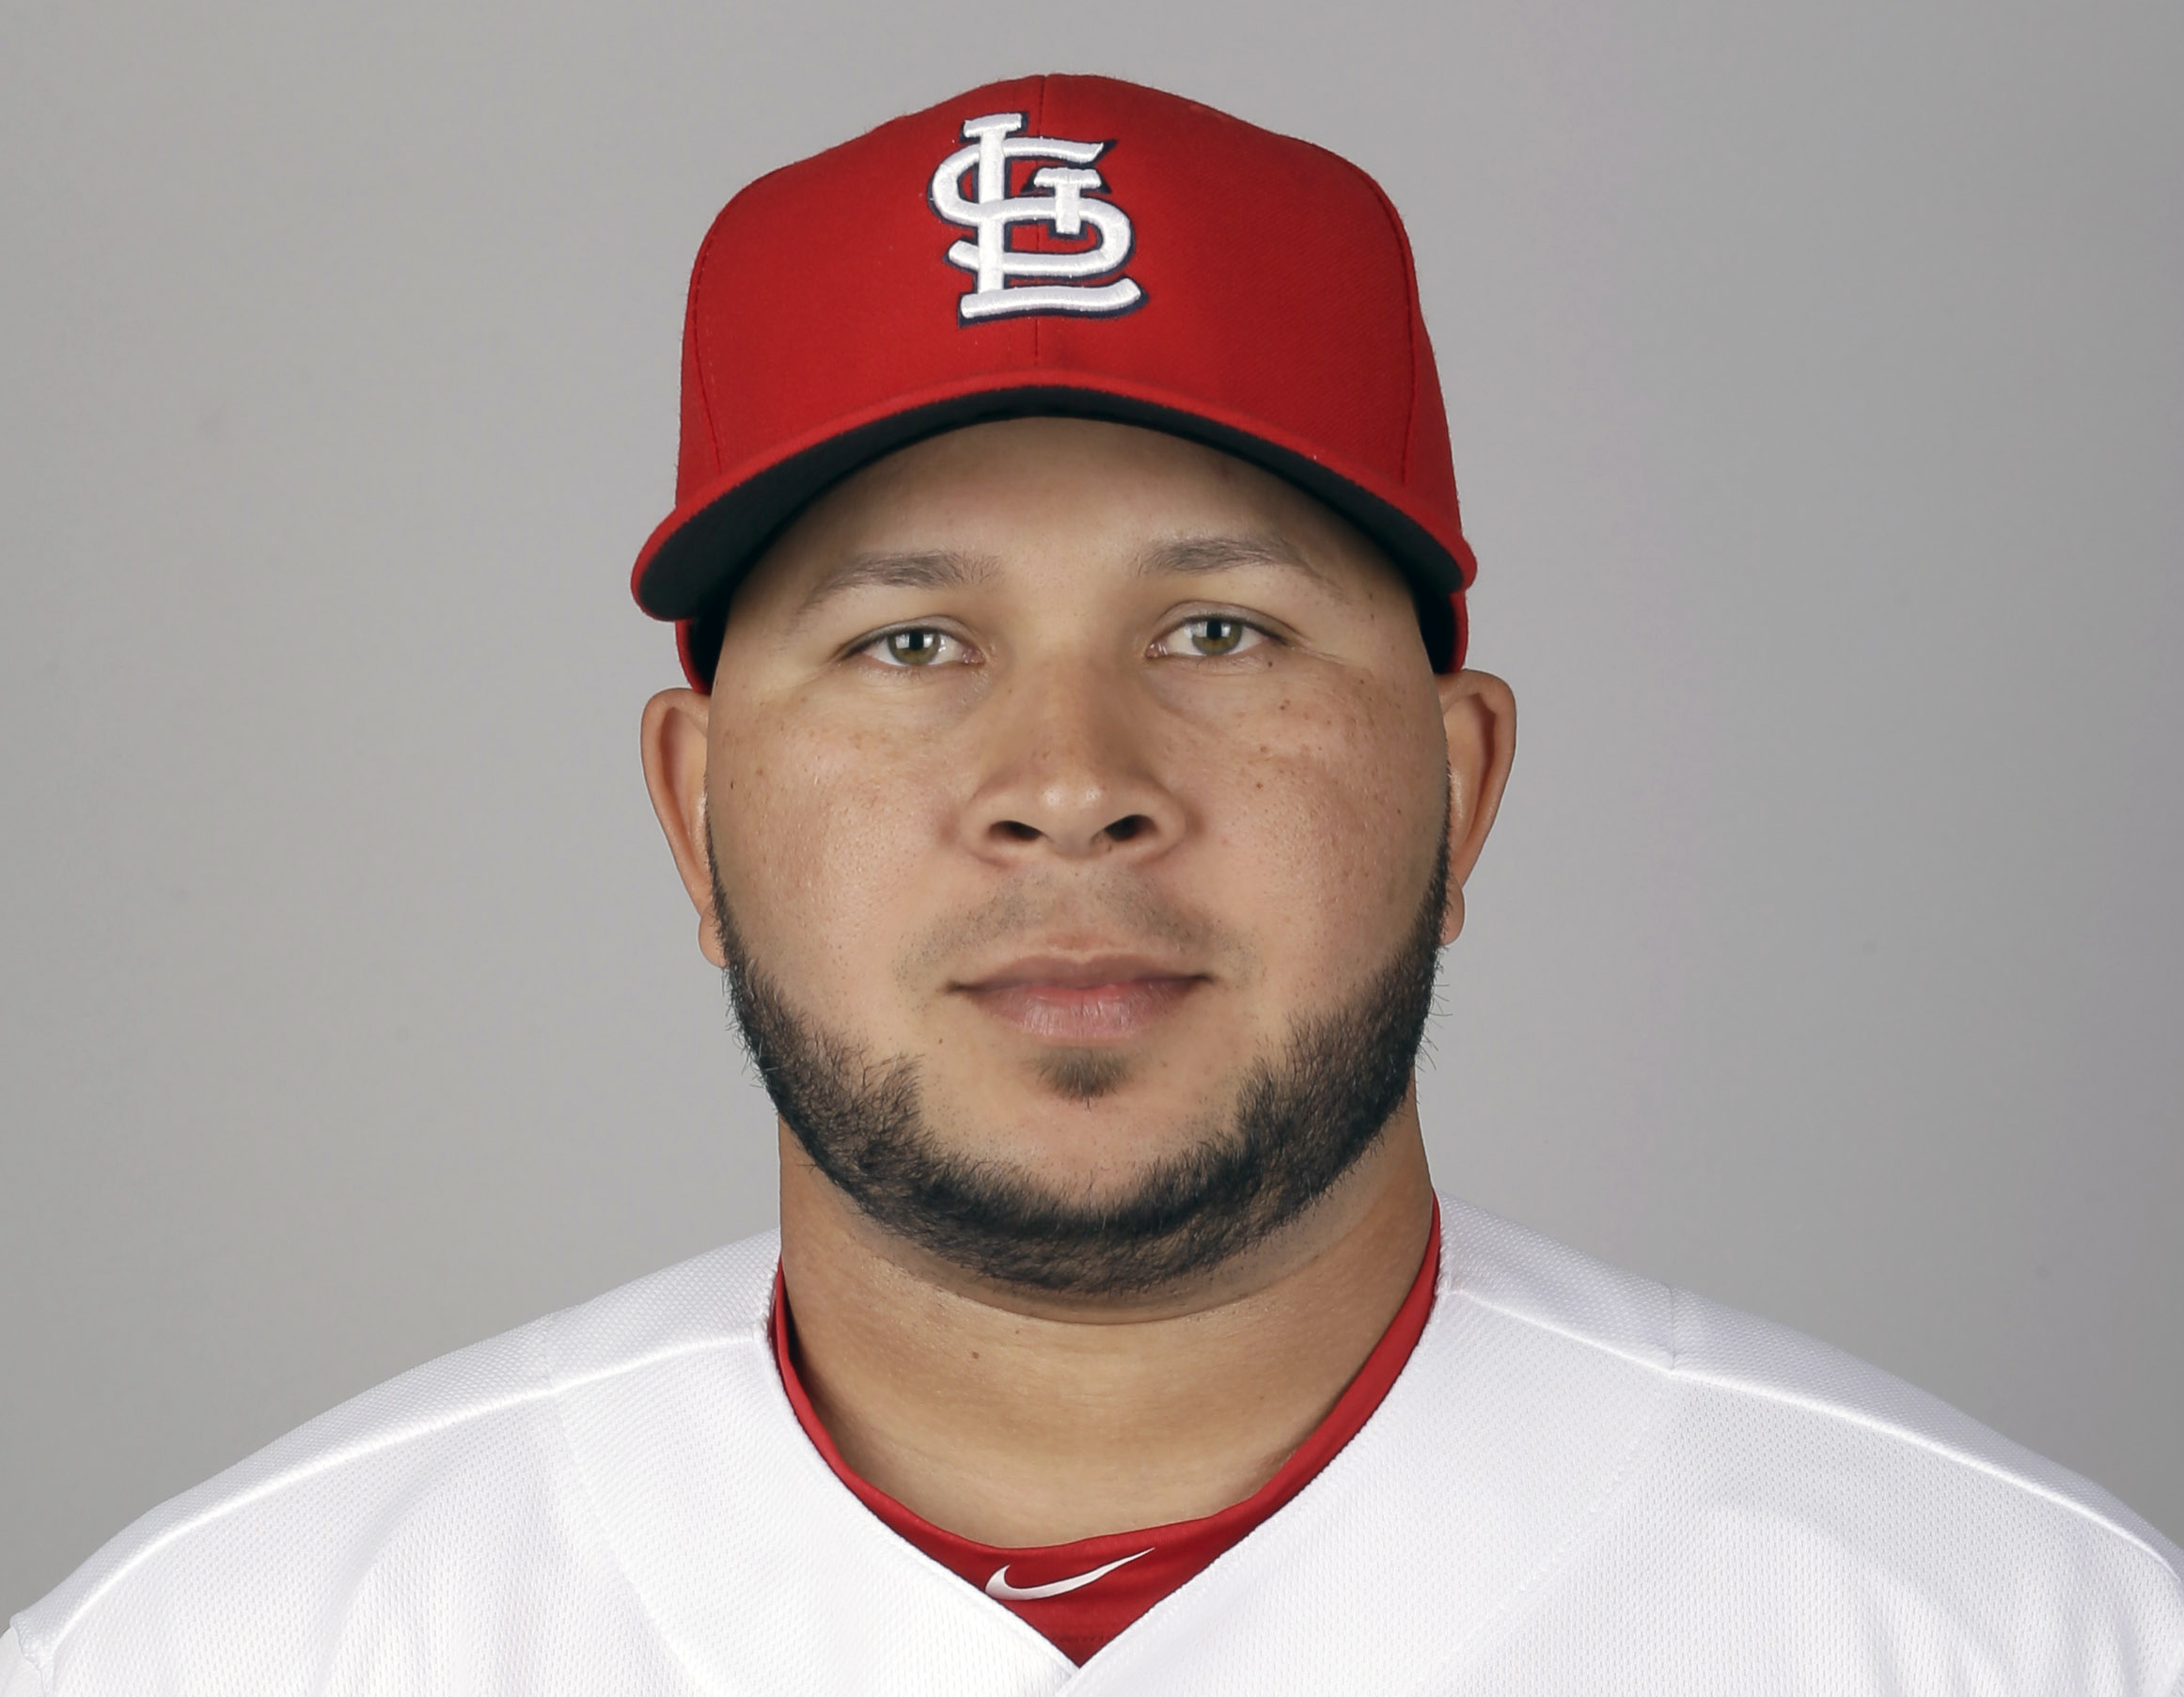 FILE - This is a 2016 photo showing Jhonny Peralta of the St. Louis Cardinals baseball team. St. Louis shortstop Jhonny Peralta injured his left thumb and could miss the first two months of the season. Cardinals general manager John Mozeliak said Peralta